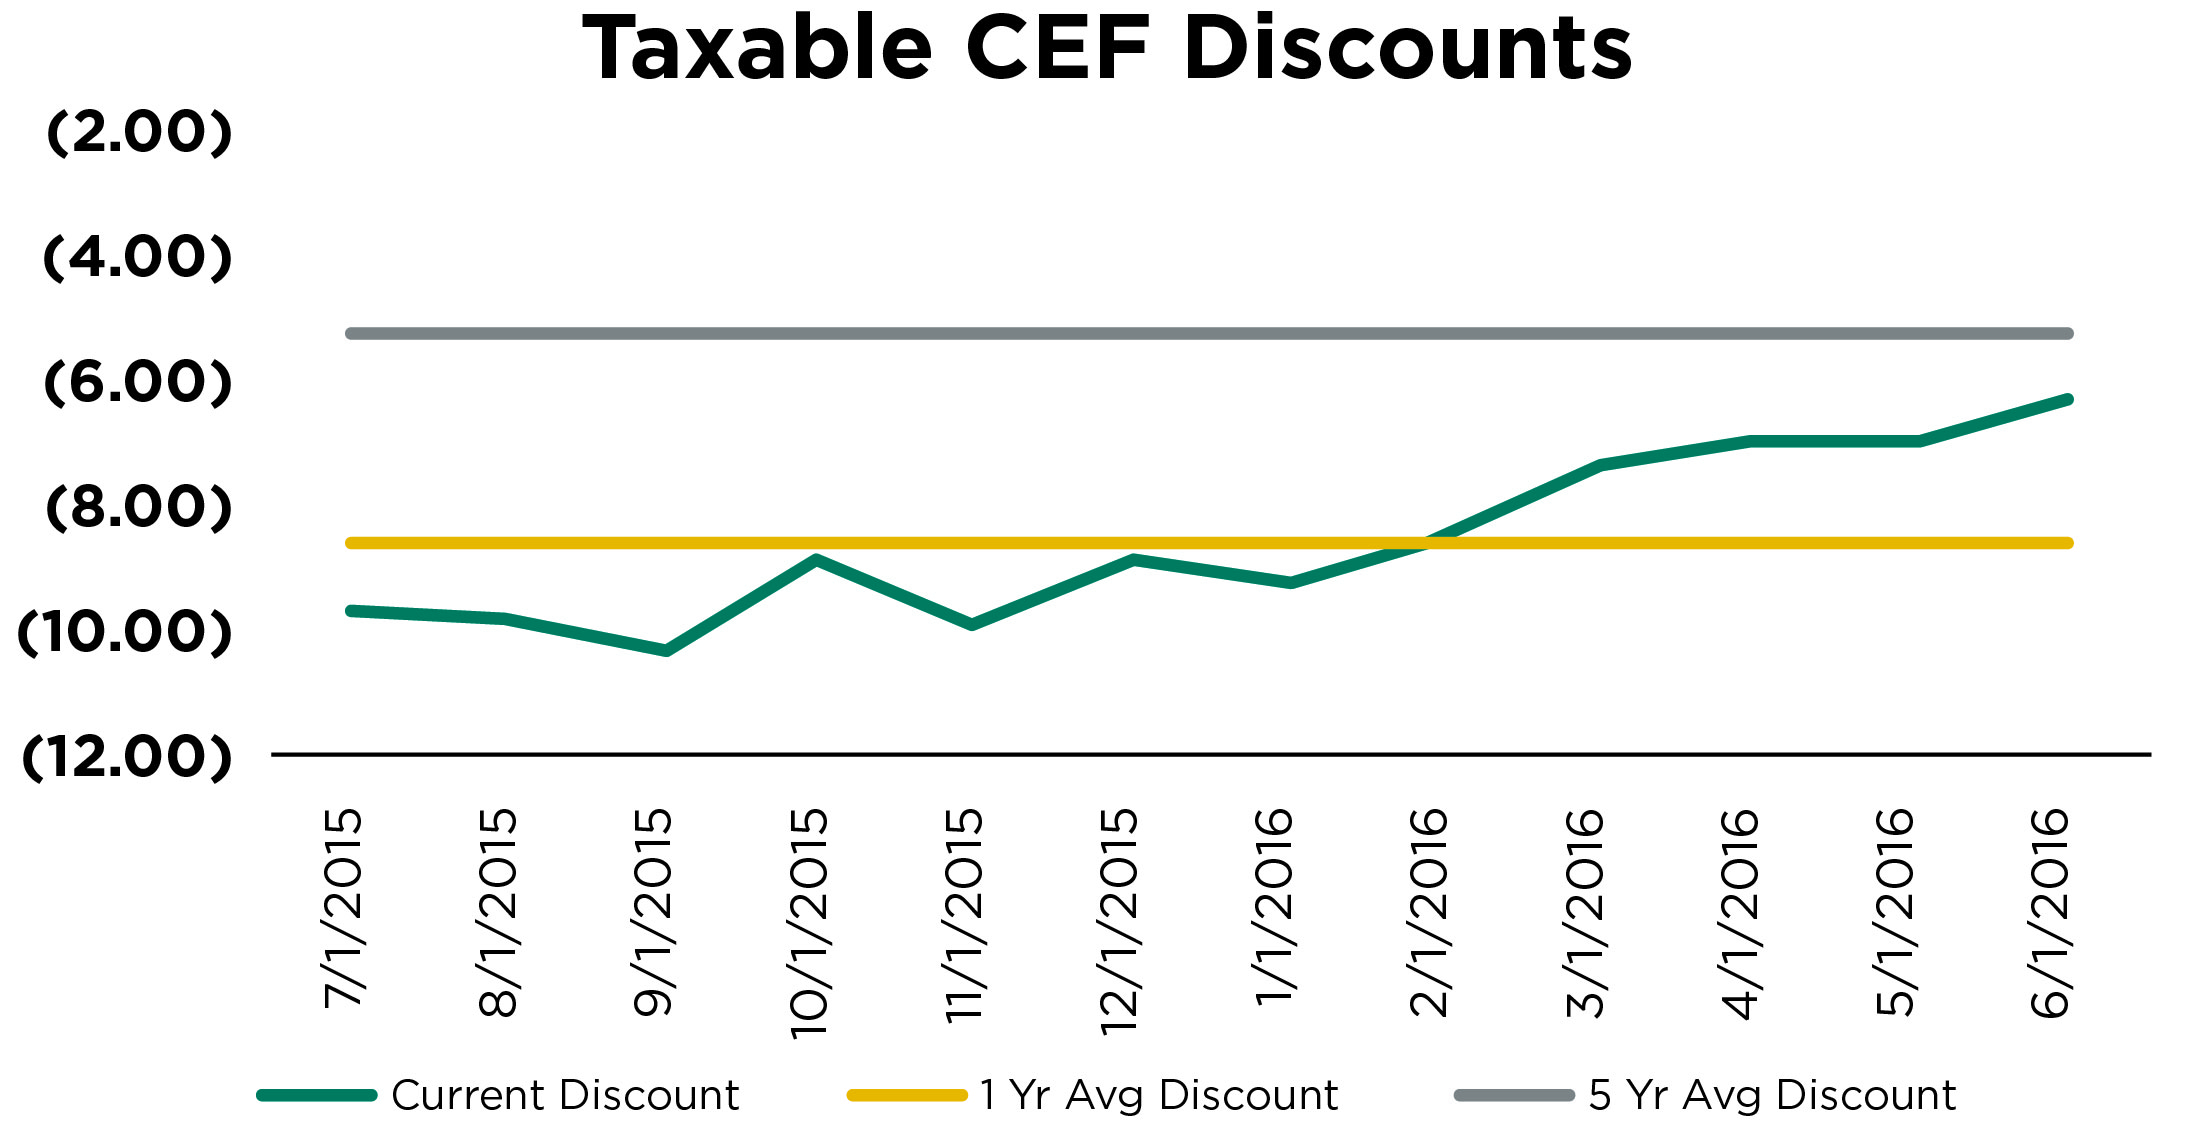 Taxable CEF Discounts